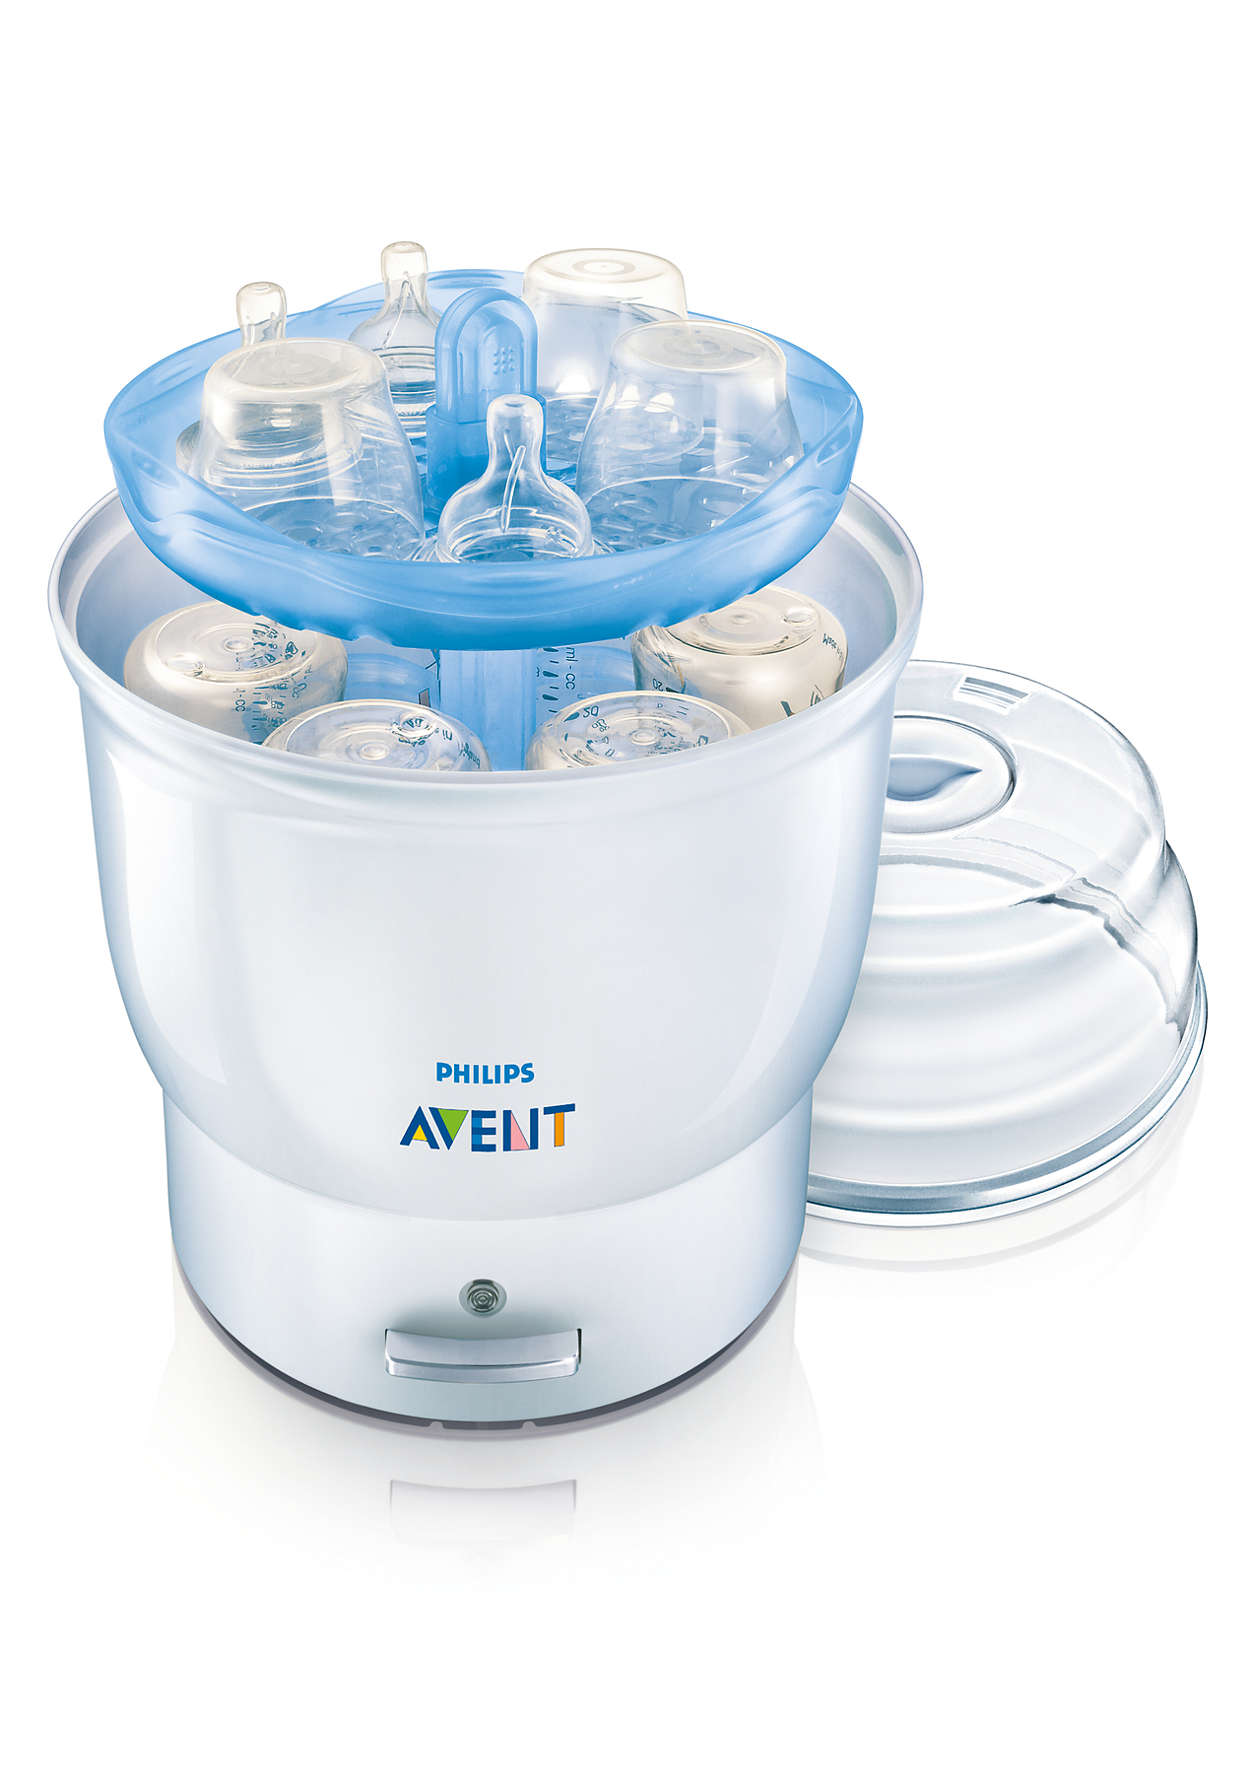 avent bottle sterilizer instructions